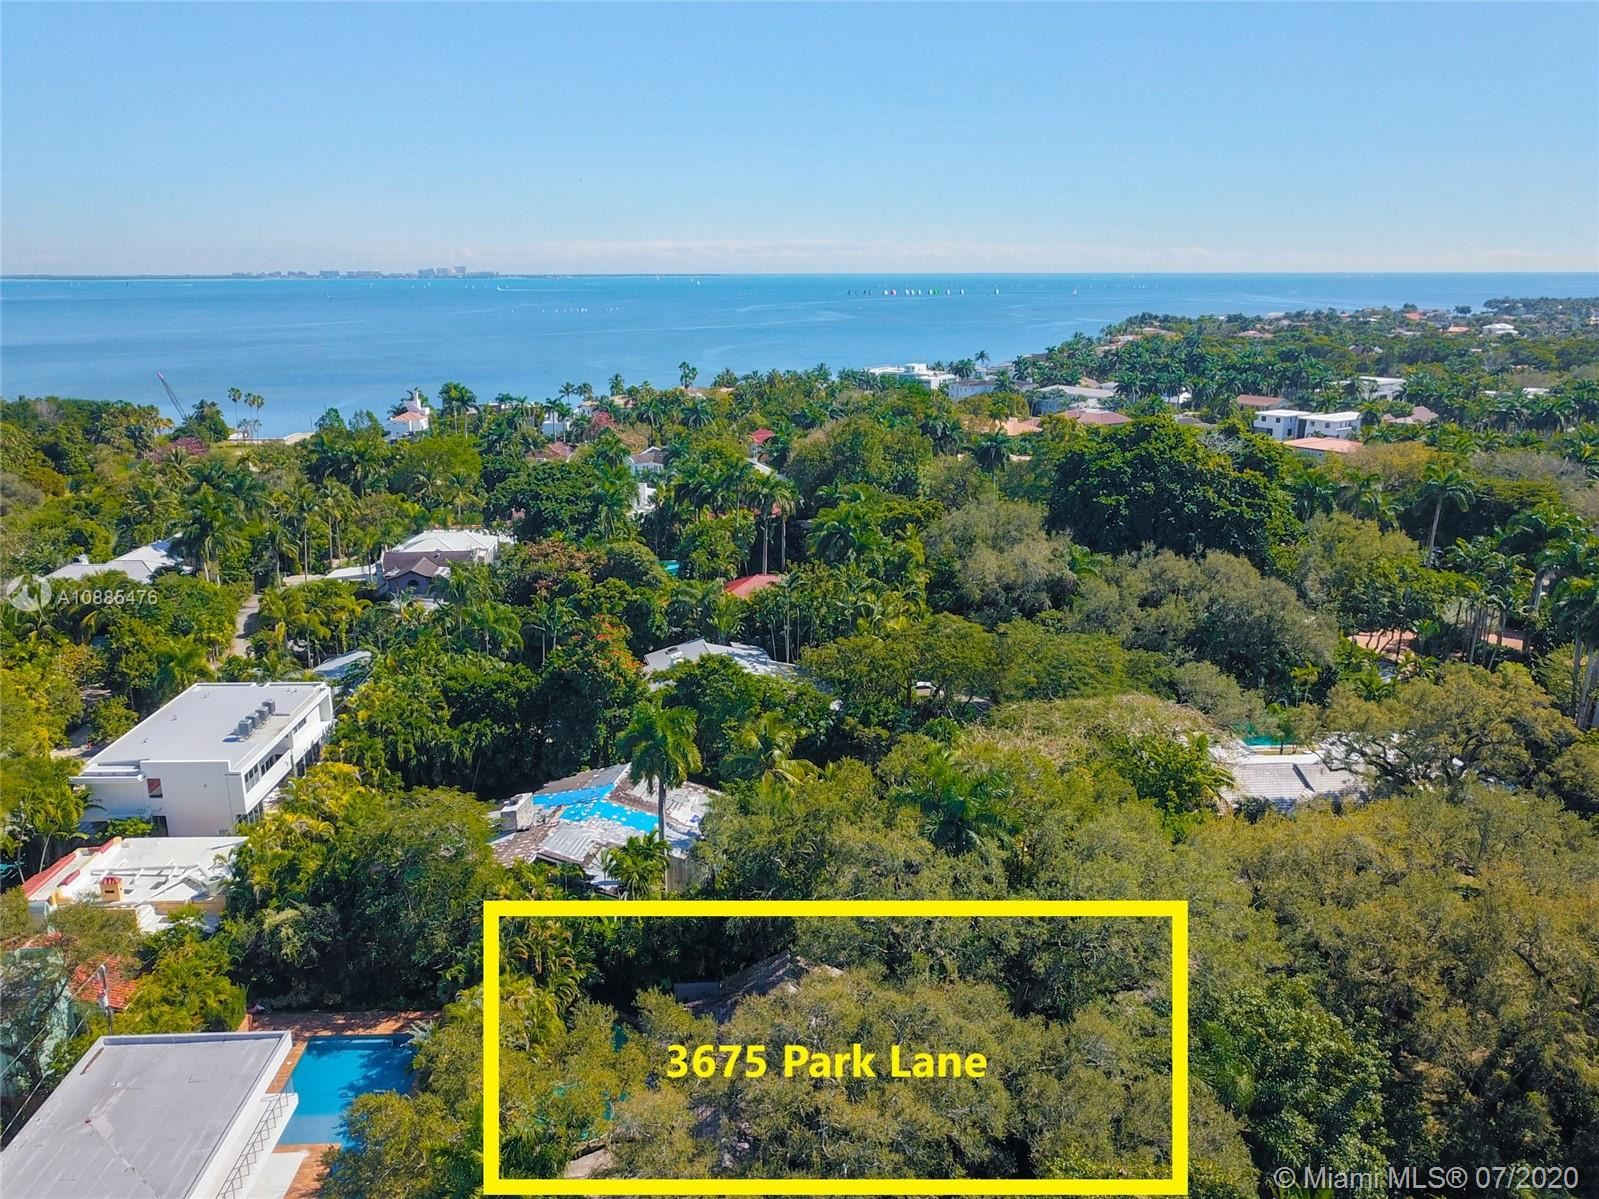 3675 Park Lane, Coconut Grove, FL 33133 - #: A10885476